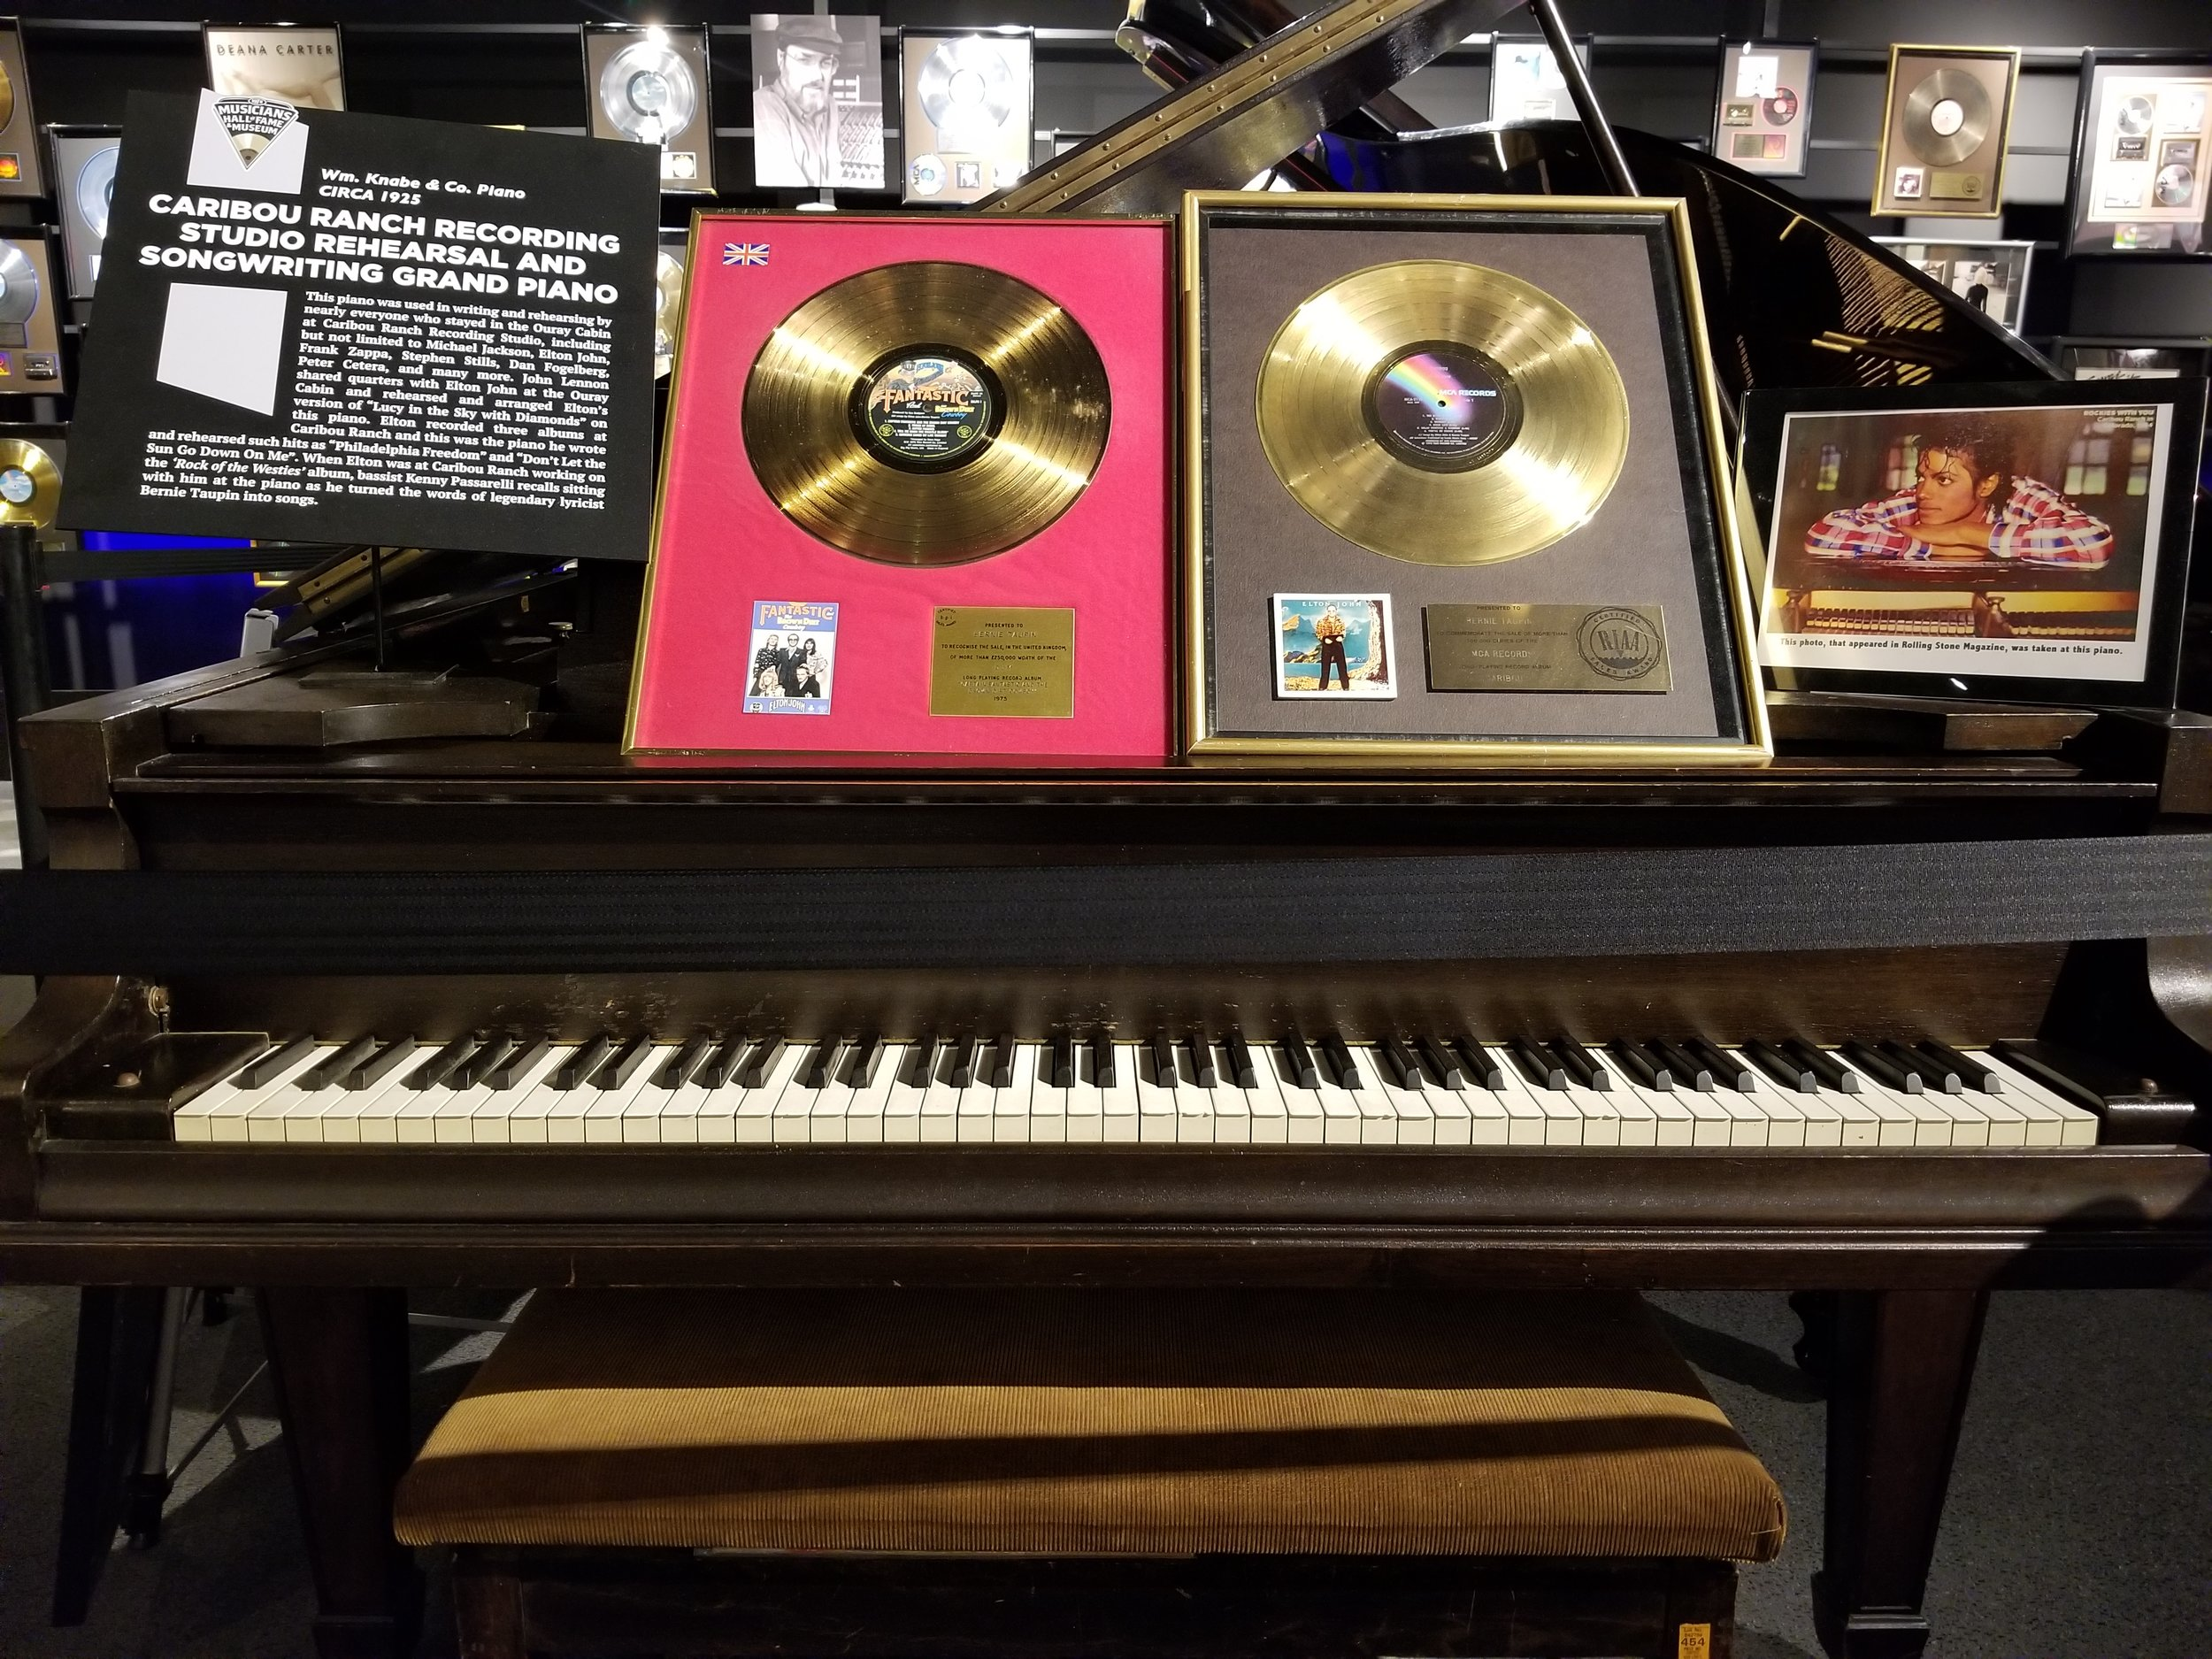 """This piano was used in the writing and rehearsing by nearly everyone who stayed in the Ouray Cabin at Caribou Ranch Recording Studio, including but not limited to Michael Jackson, Elton John, Frank Sappa.. John Lennon shared quarters with Elton John at the Ouray Cabin and rehearsed and arranged Elton's version of """"Lucy in the Sky with Diamonds"""" on this piano"""